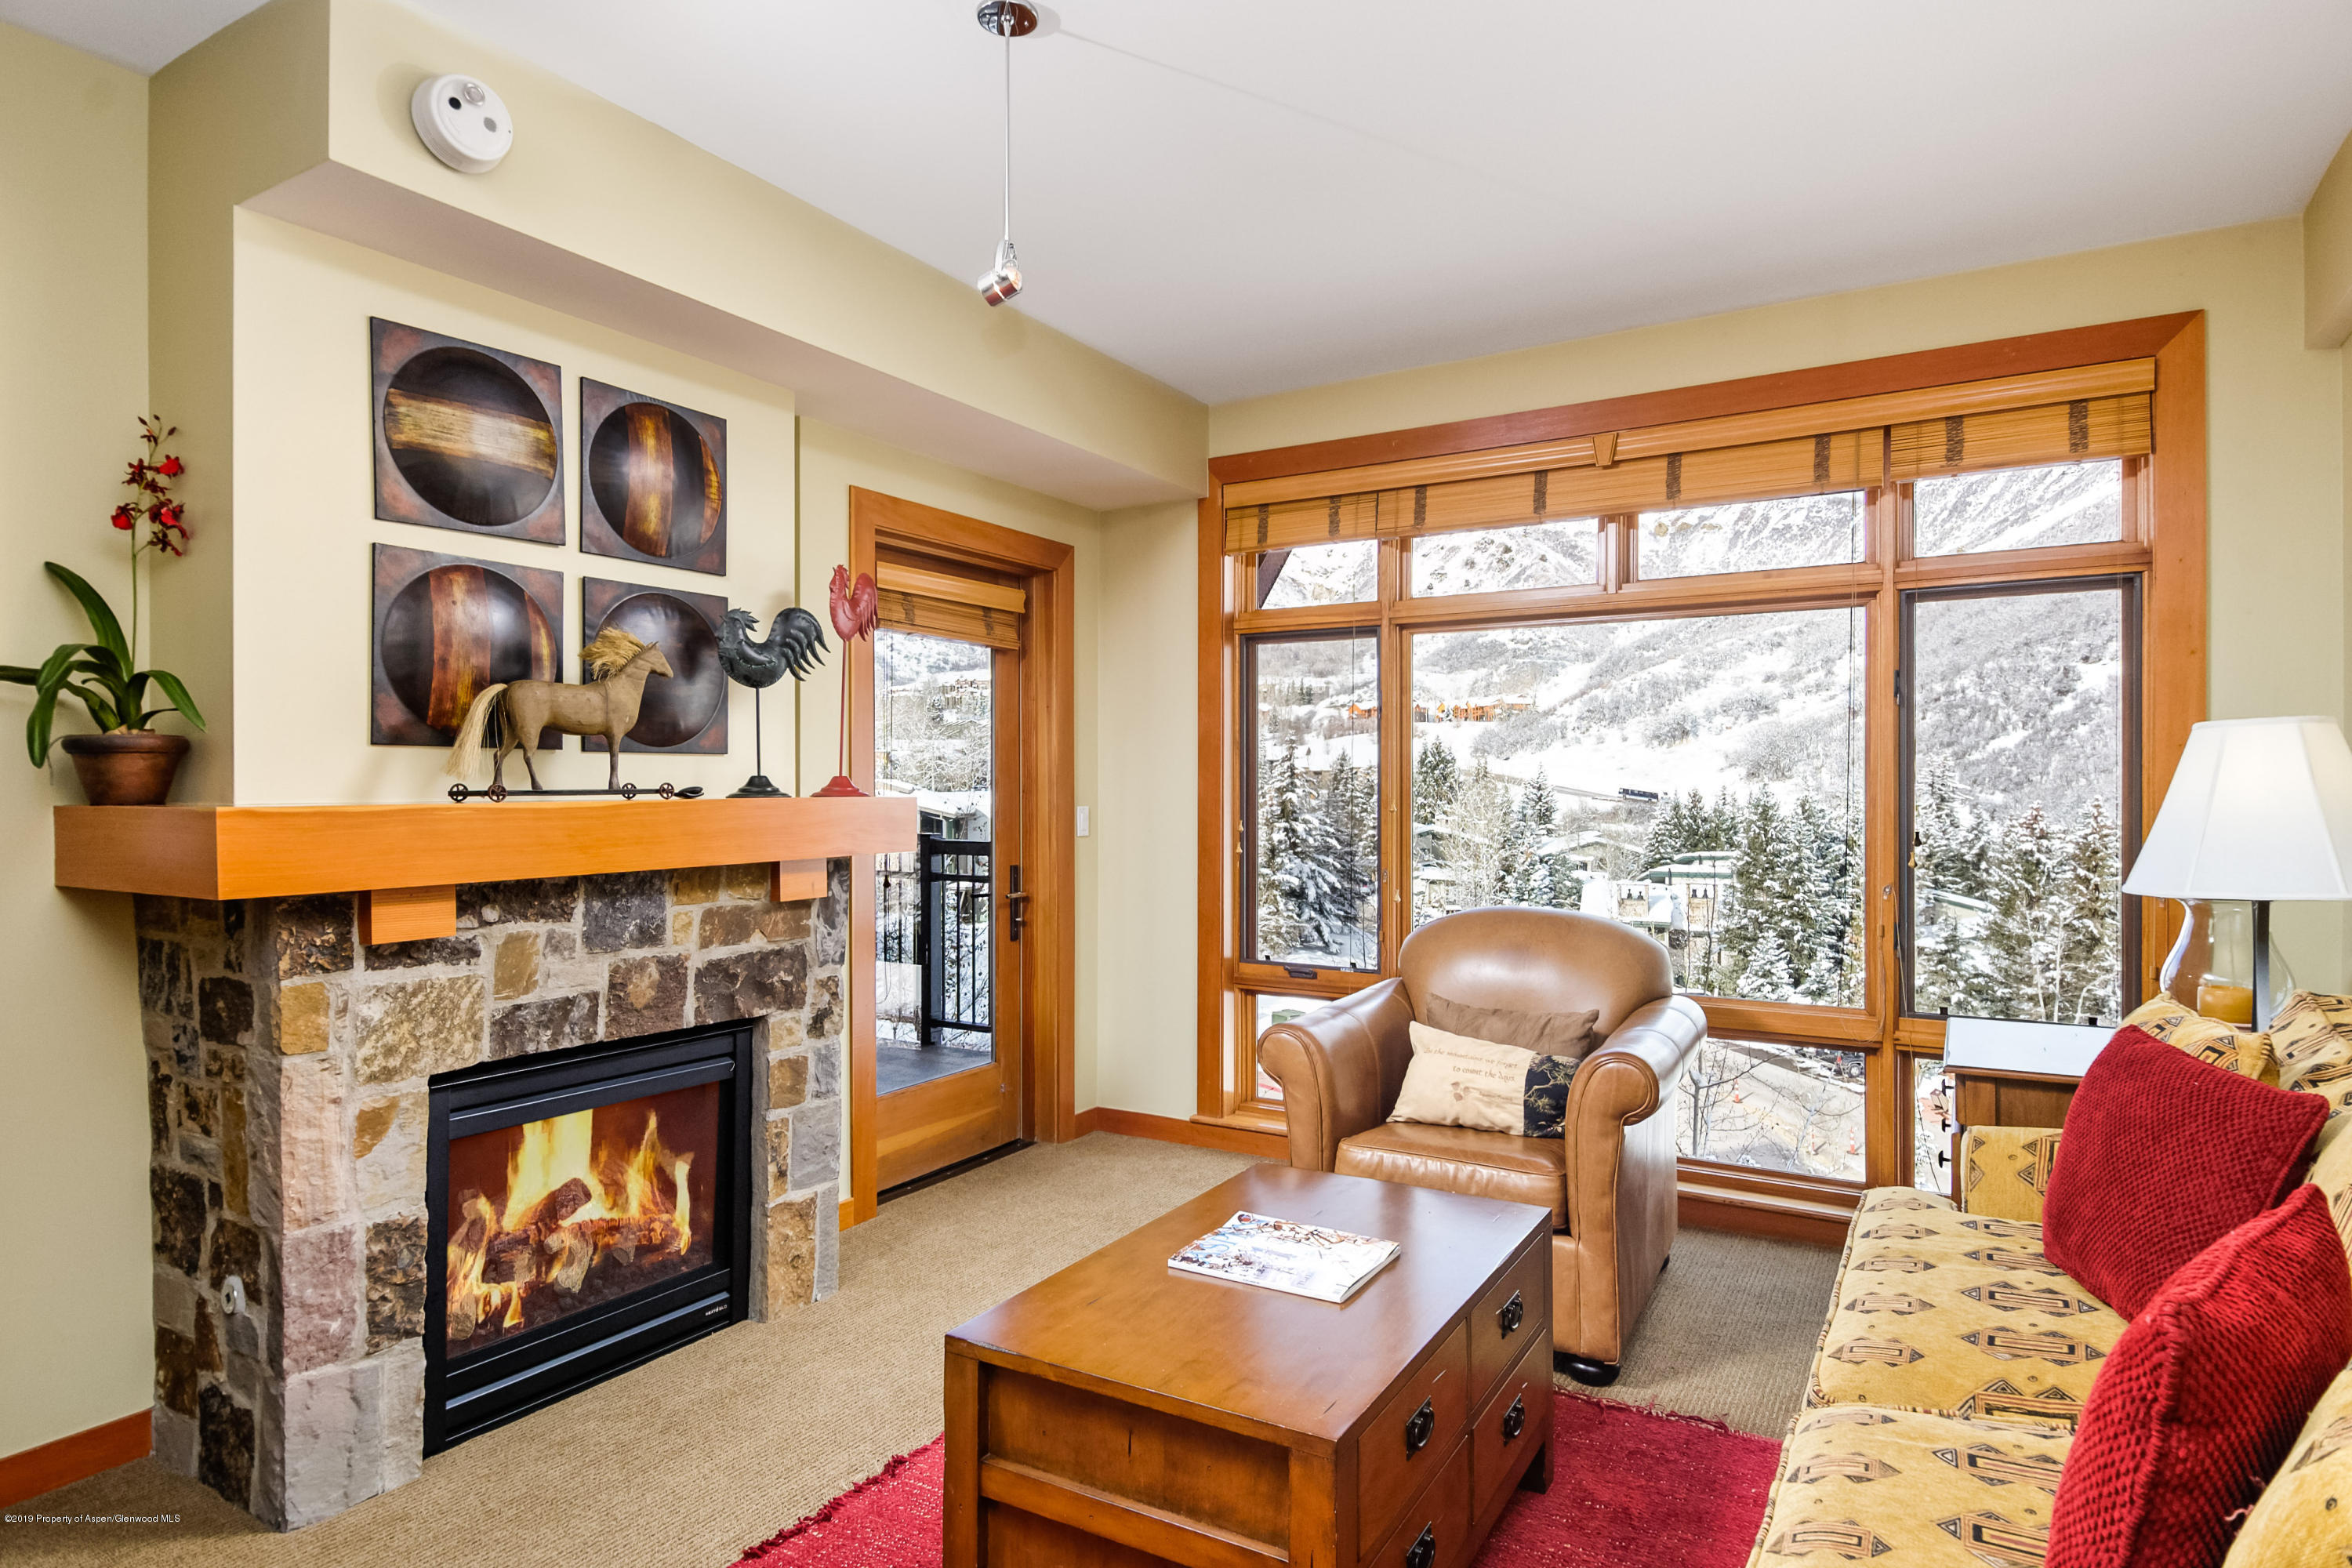 110 Carriage Way, 3309 - Snowmass Village, Colorado